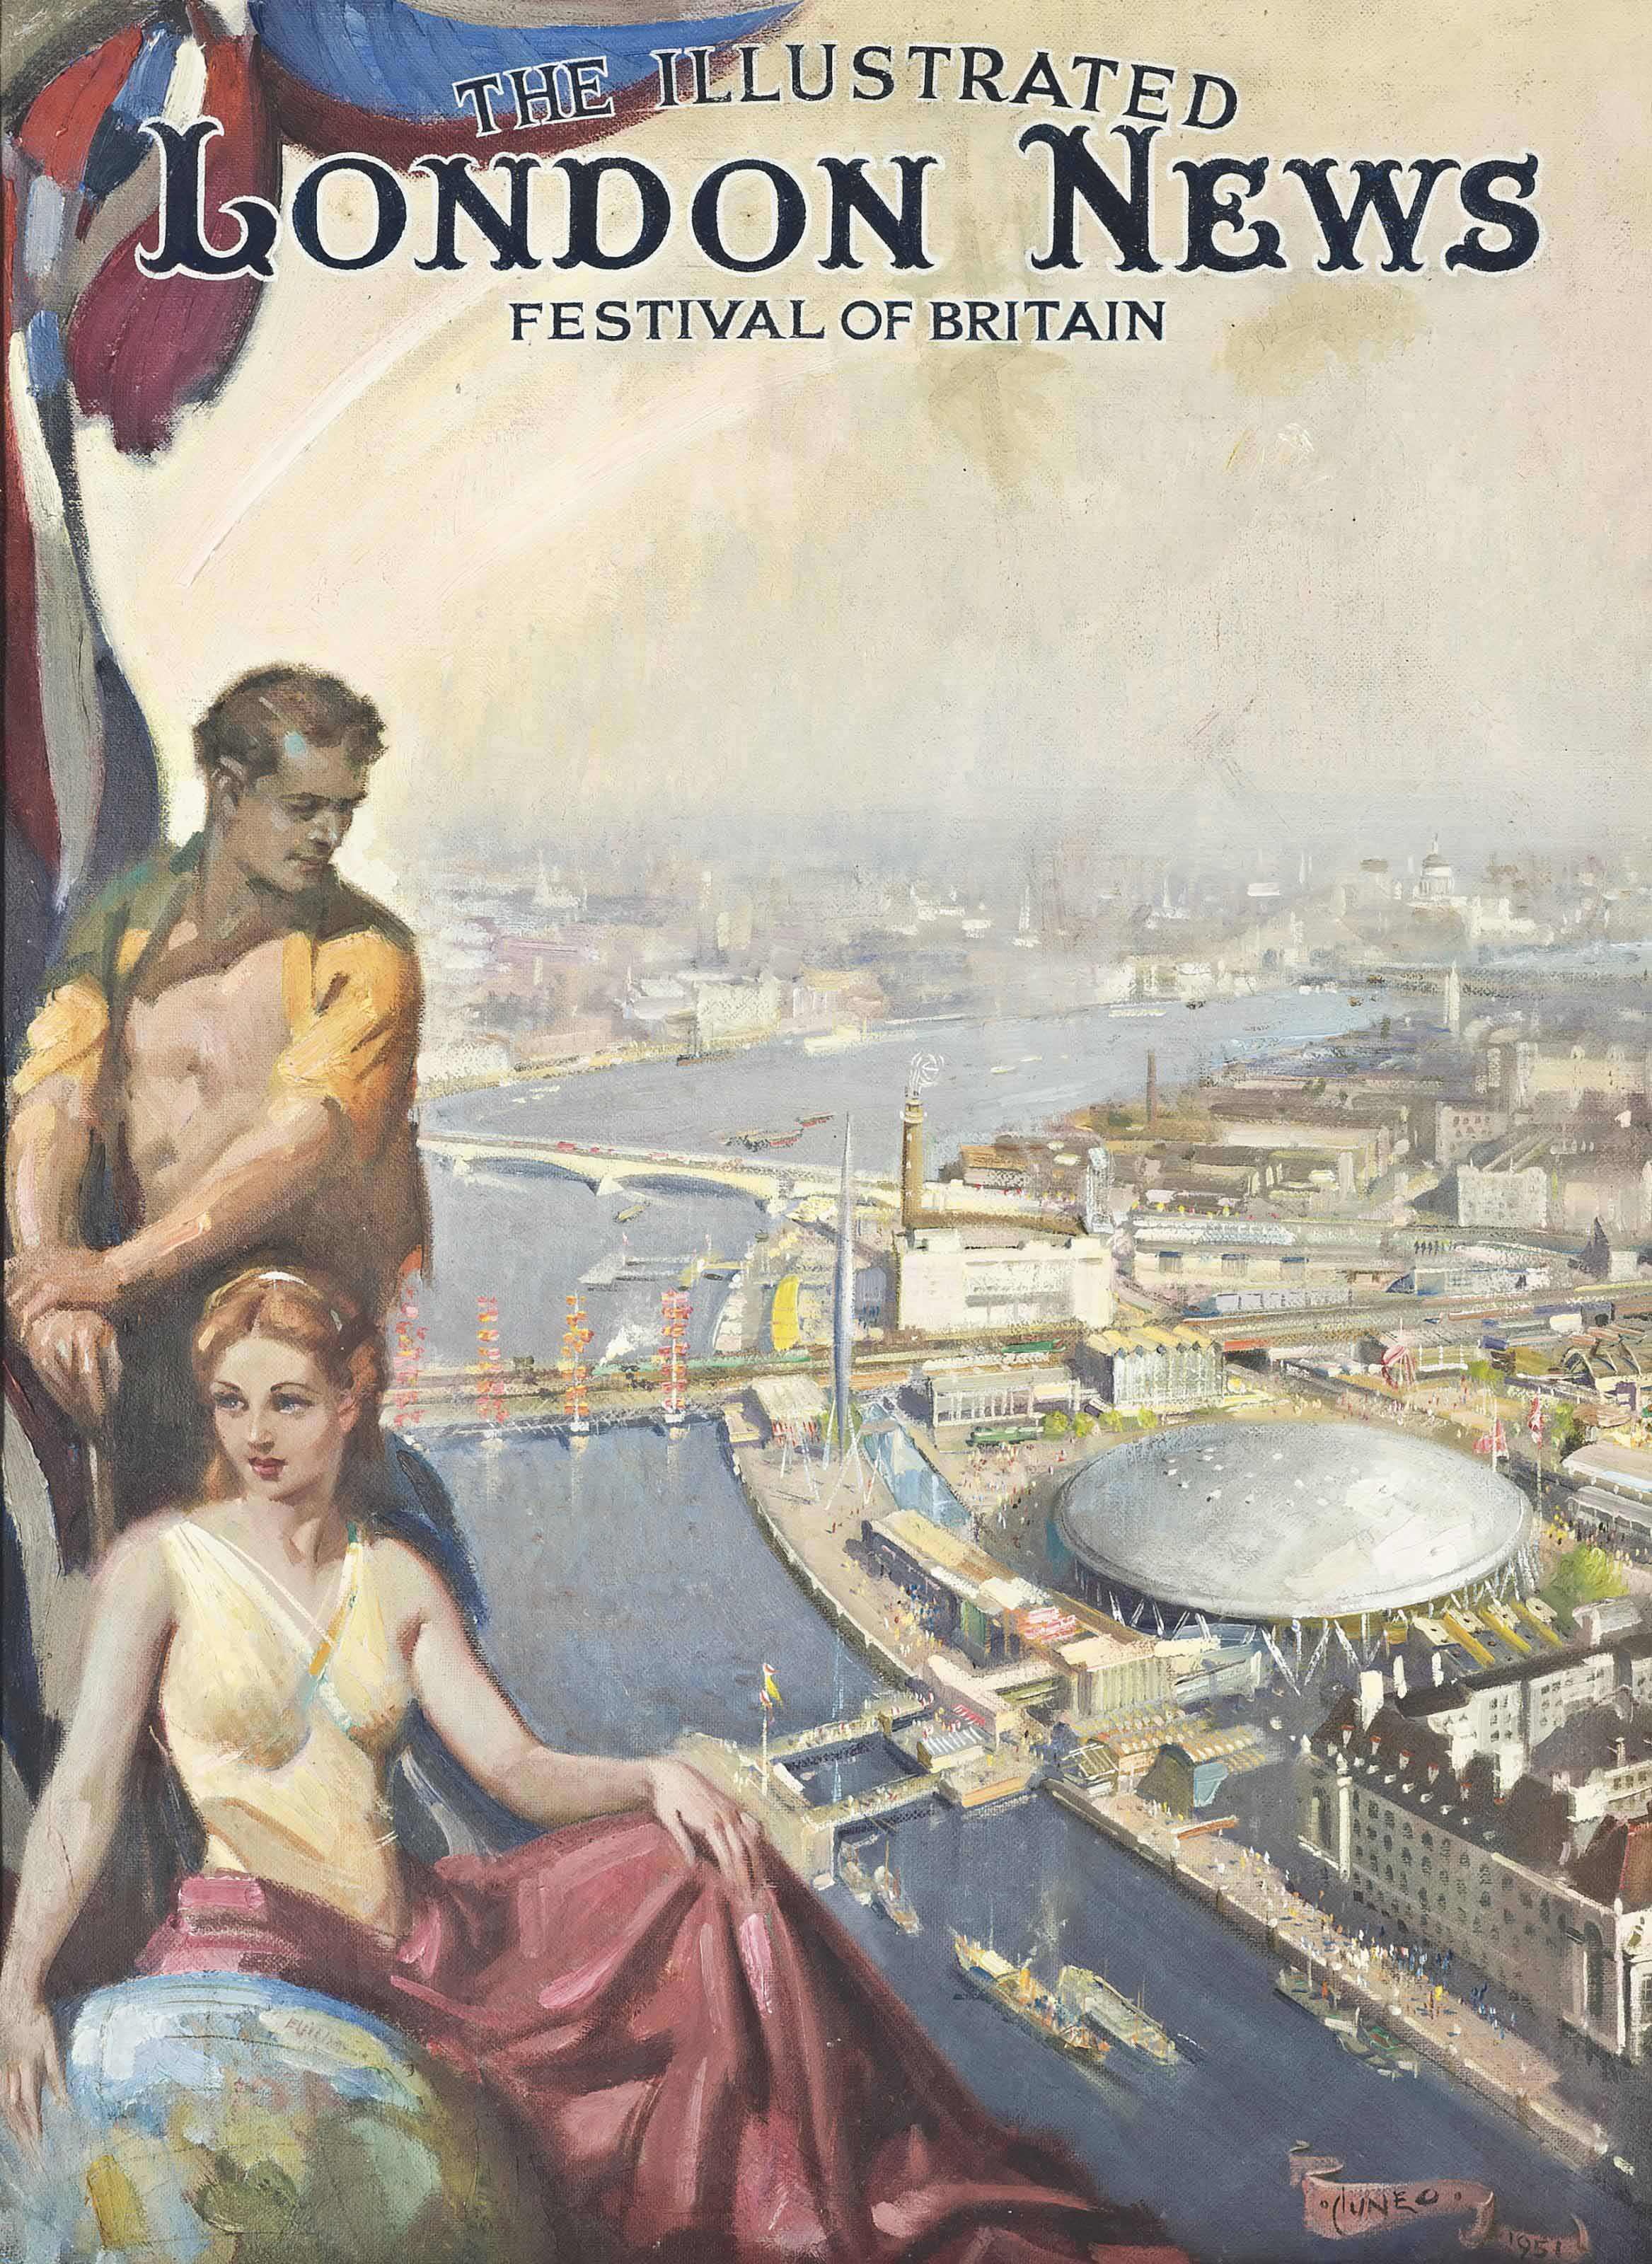 The front cover of the Festival of Britain edition of The Illustrated London News, 1951